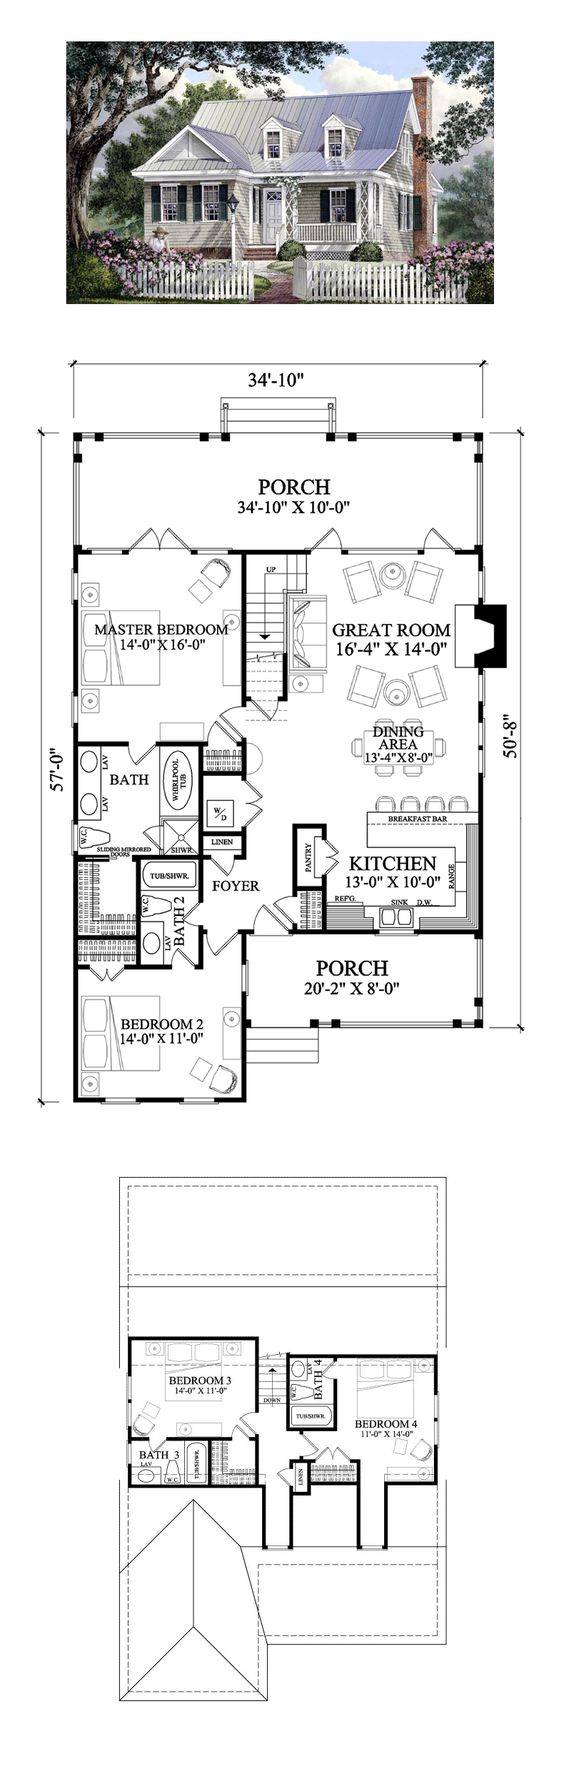 Cape cod cottage country southern house plan 86106 for Country cape cod house plans